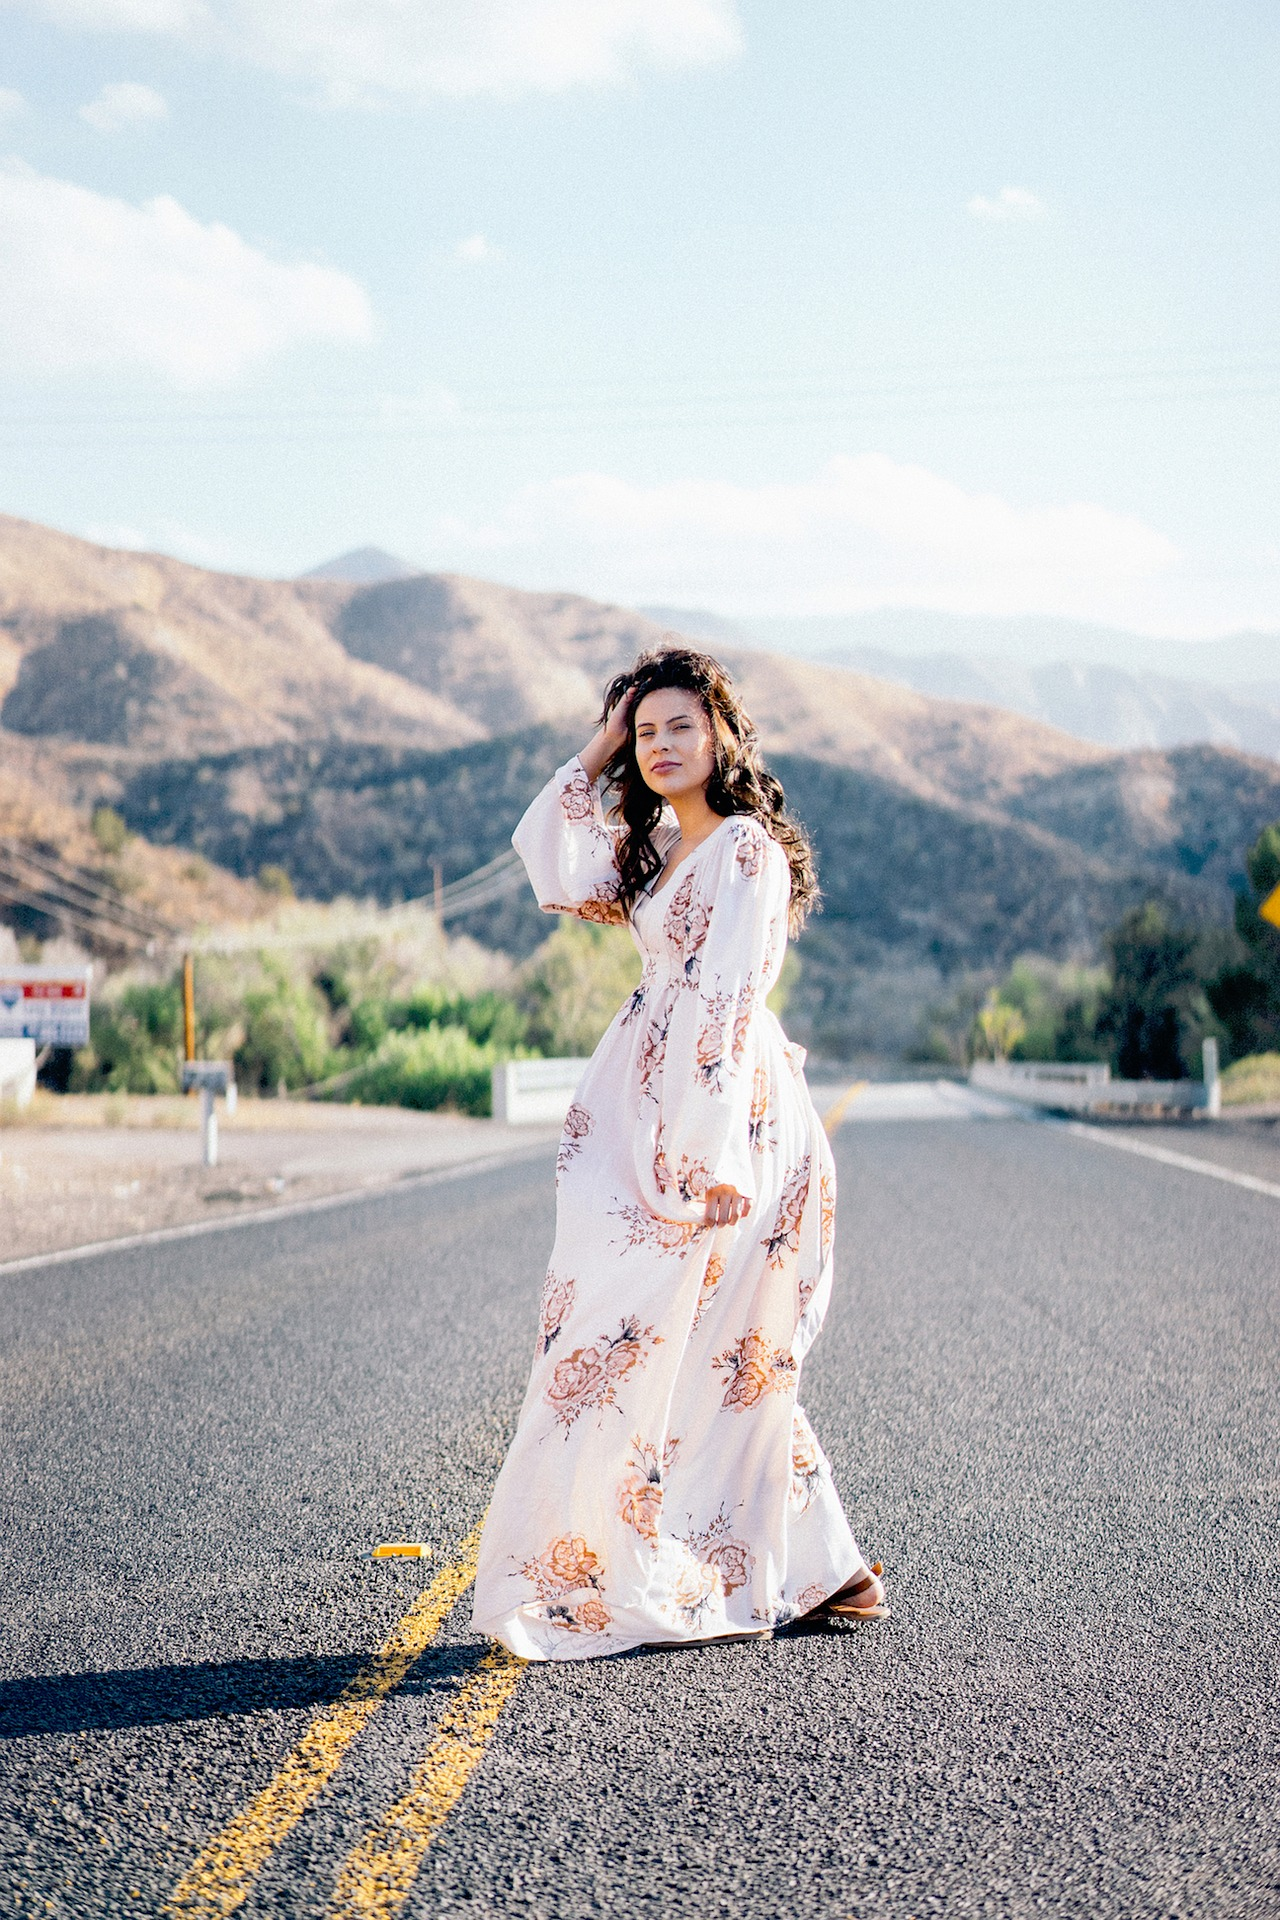 a woman wearing a white and floal maxi dress standing in the middle of a deserted mountain road pushing her brown hair out of her face